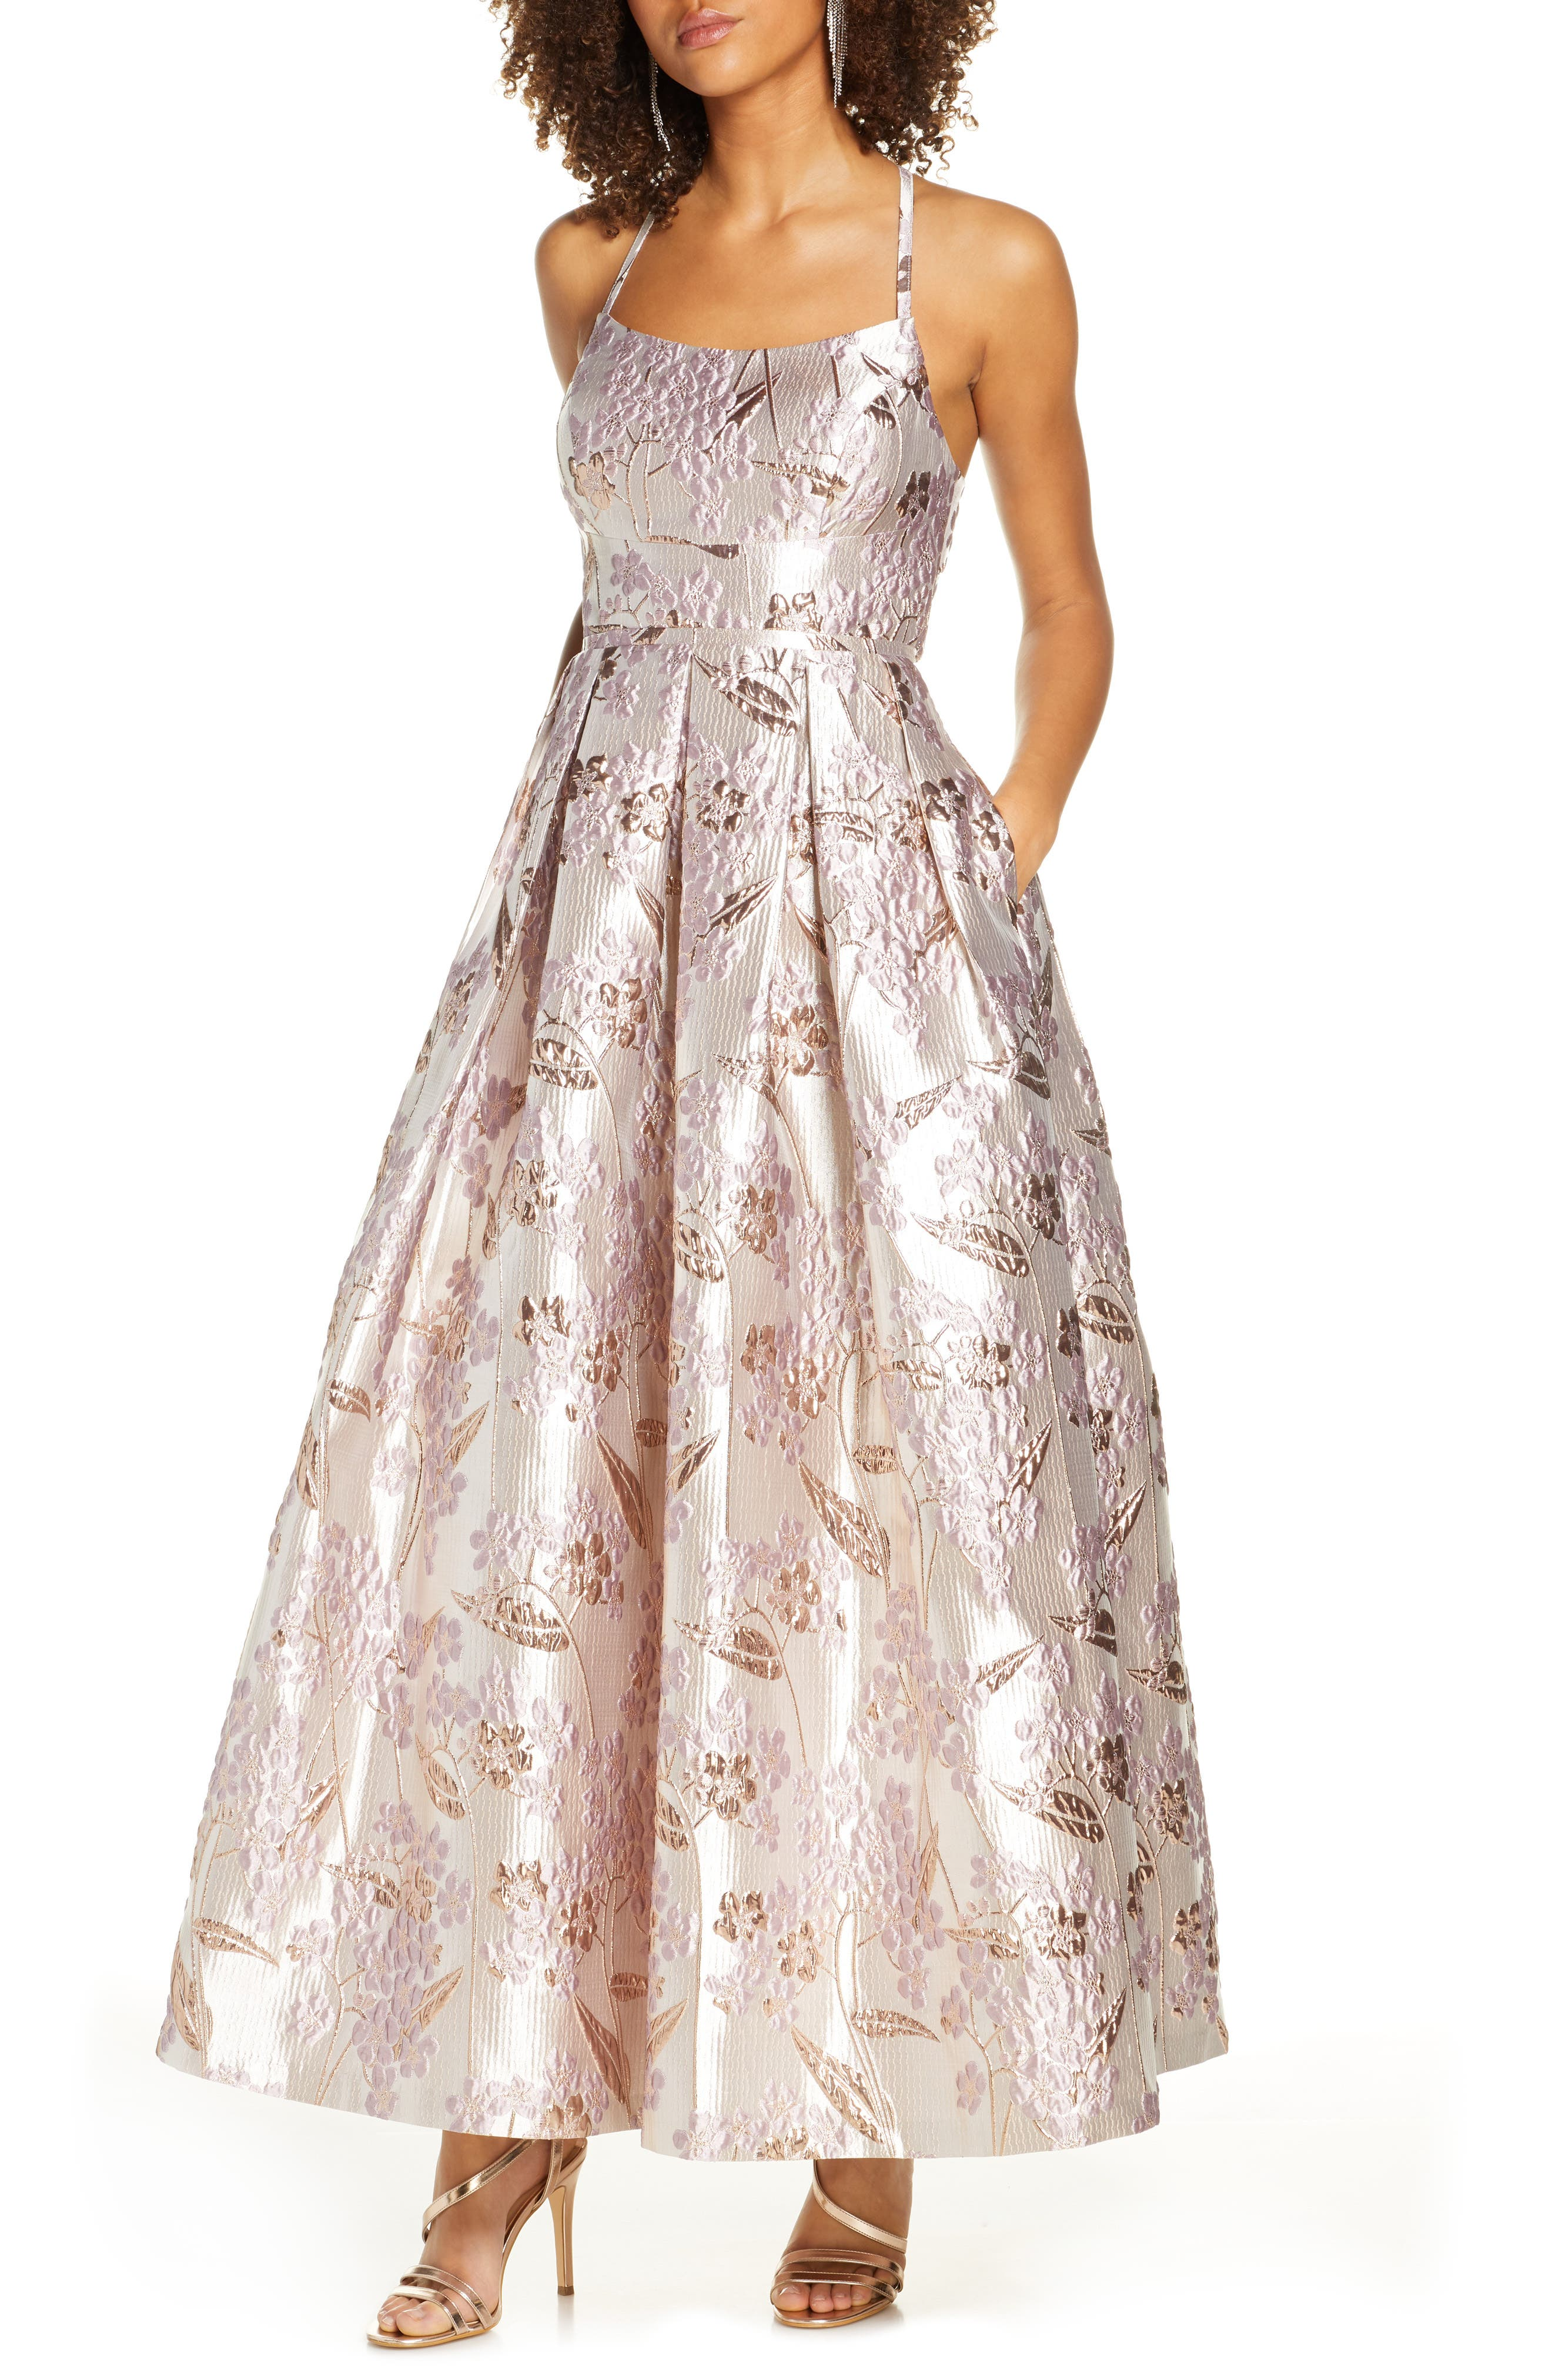 Vintage 50s Dresses: Best 1950s Dress Styles Womens Morgan And Co. Metallic Brocade Ballgown $189.00 AT vintagedancer.com